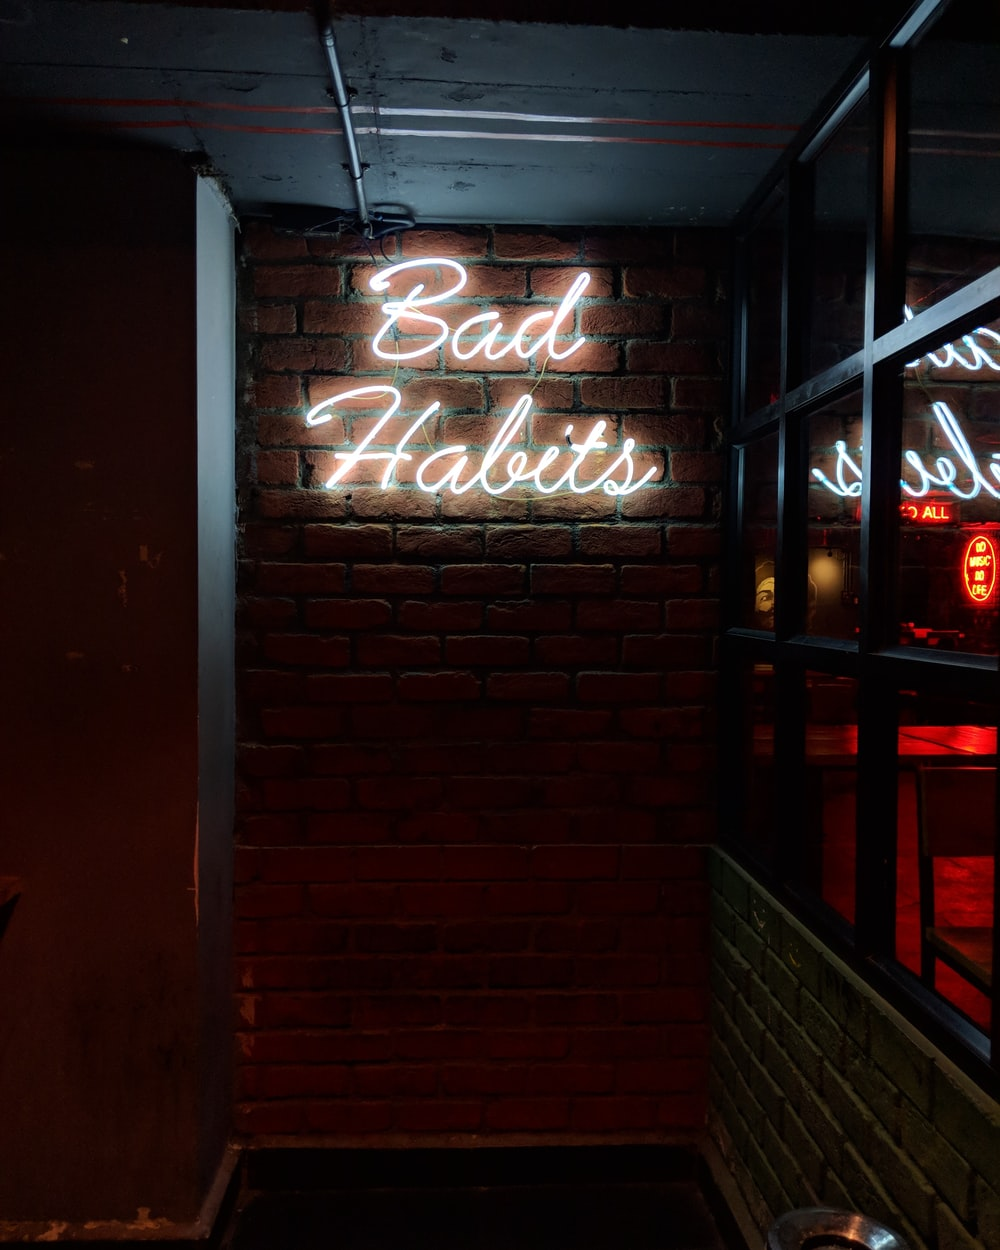 white bad habits LED signage